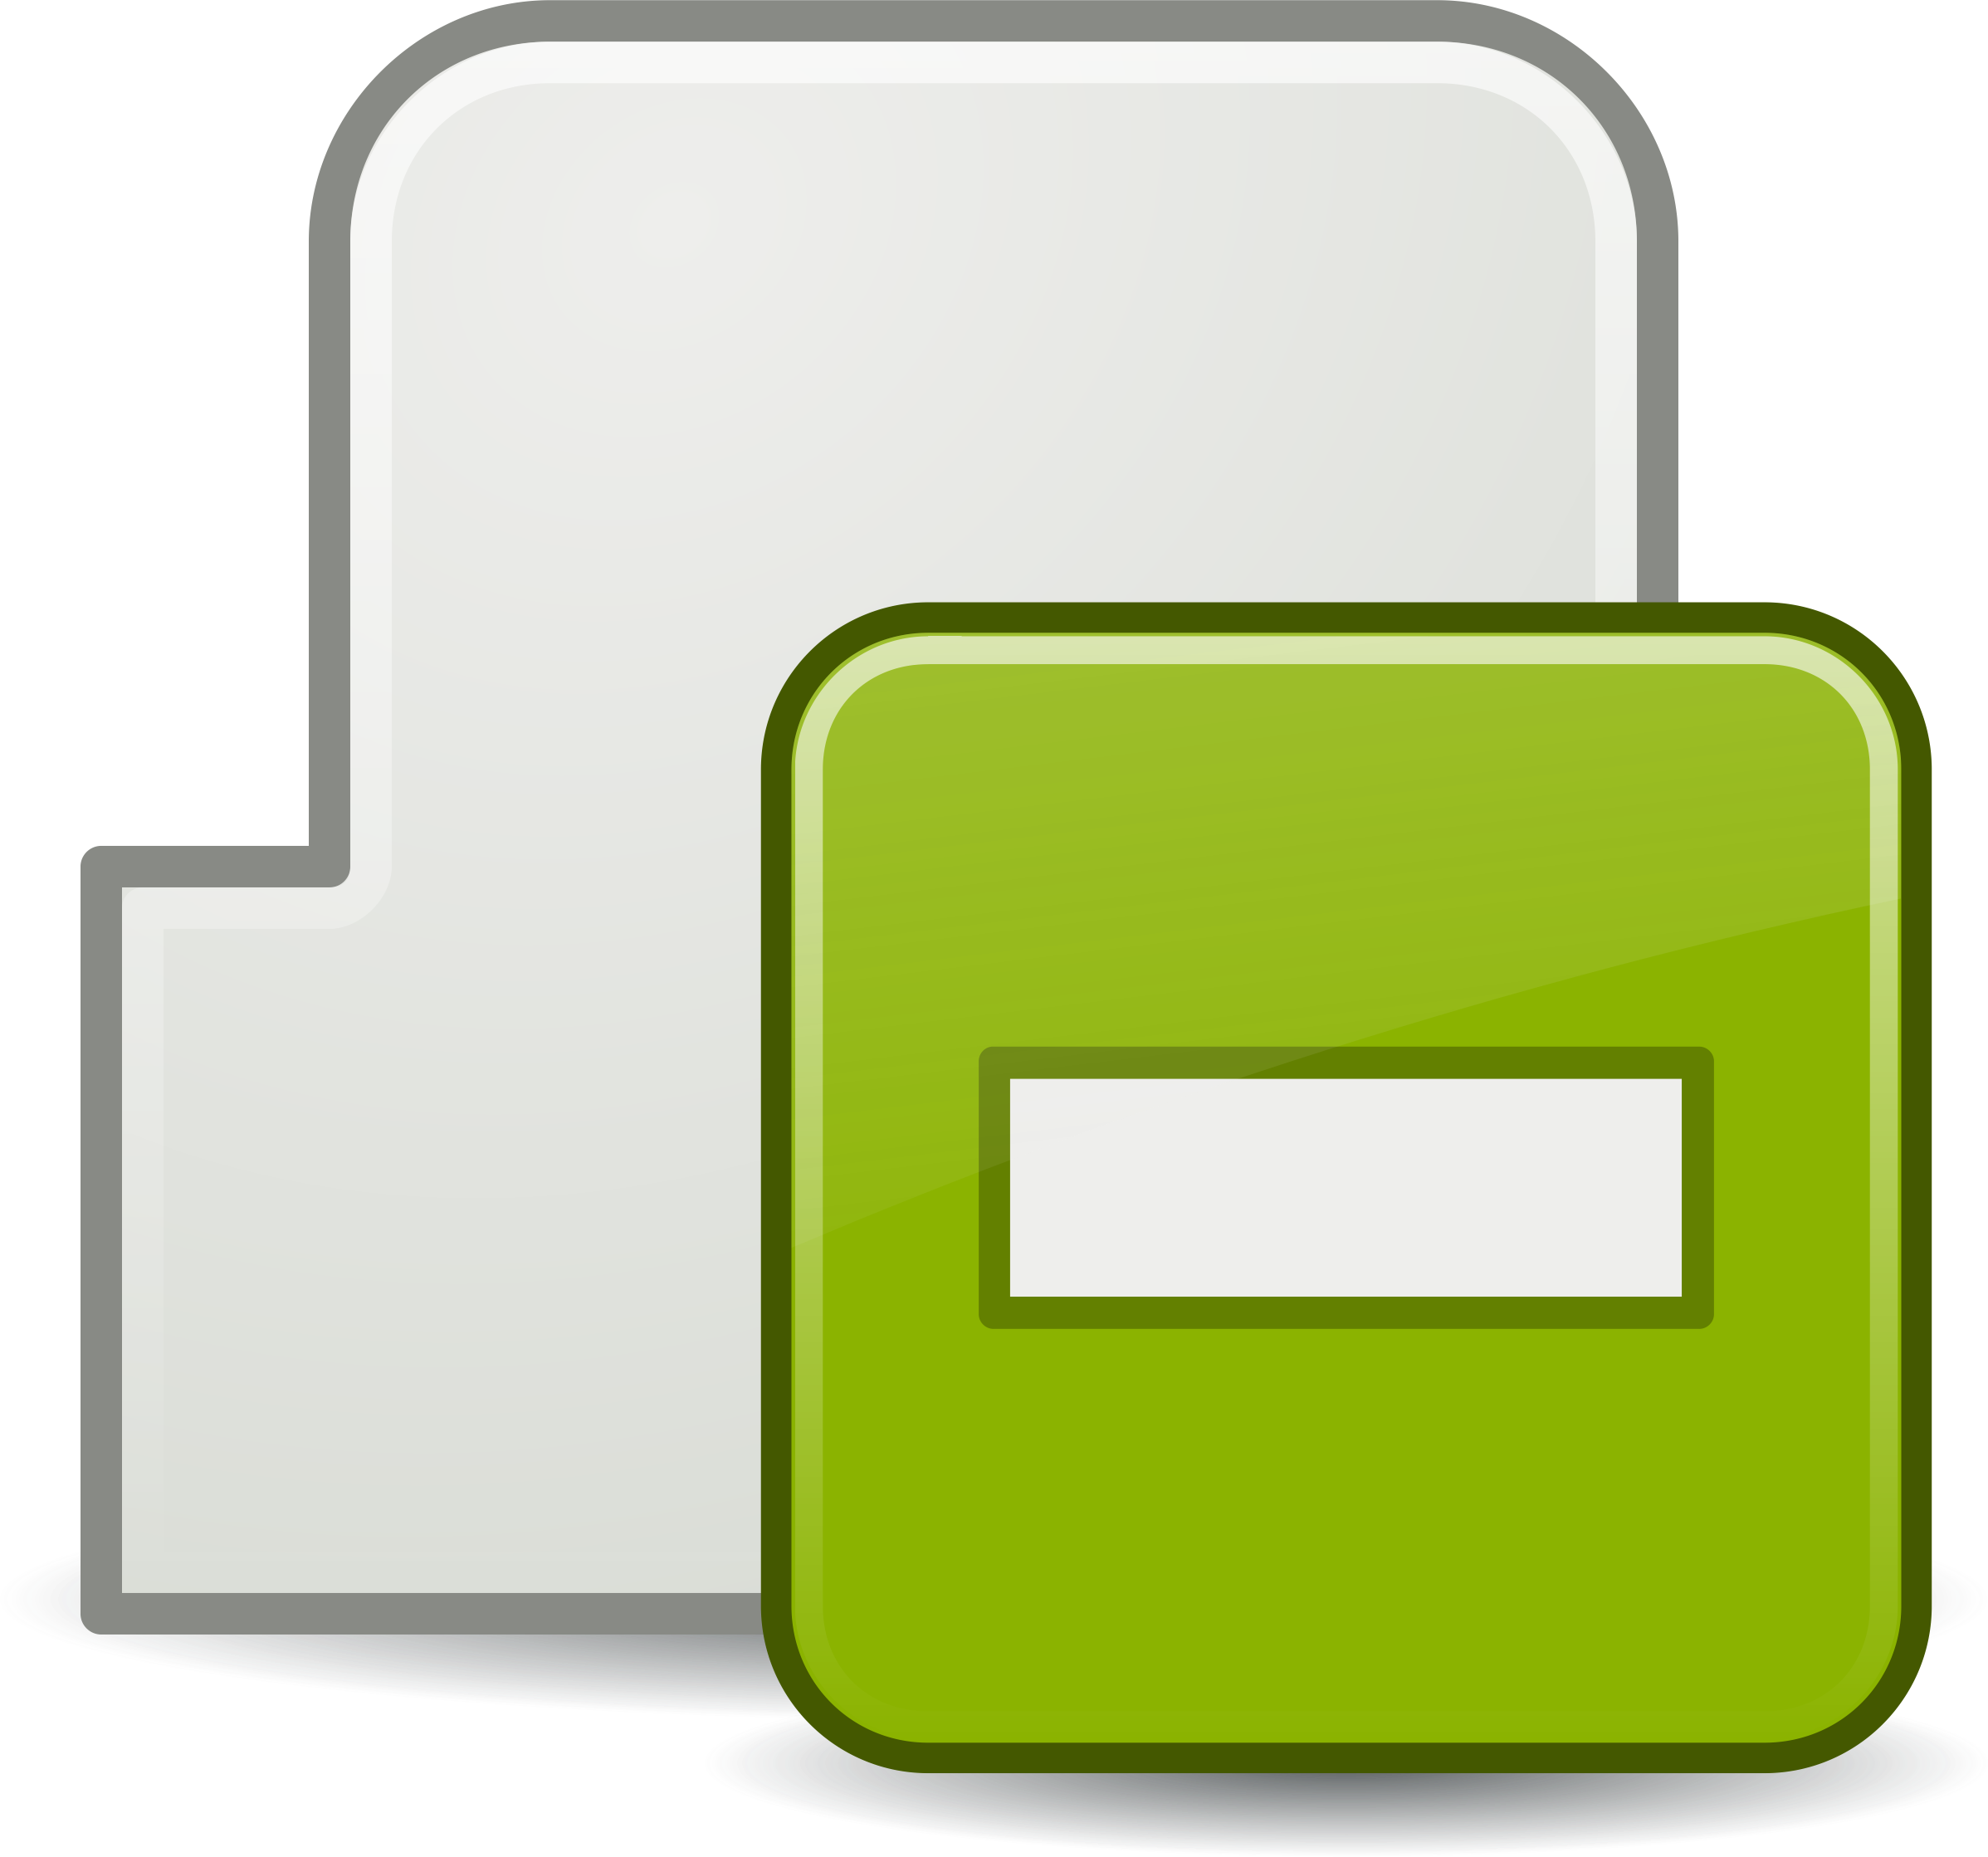 Subtract Tab Icon by GDJ